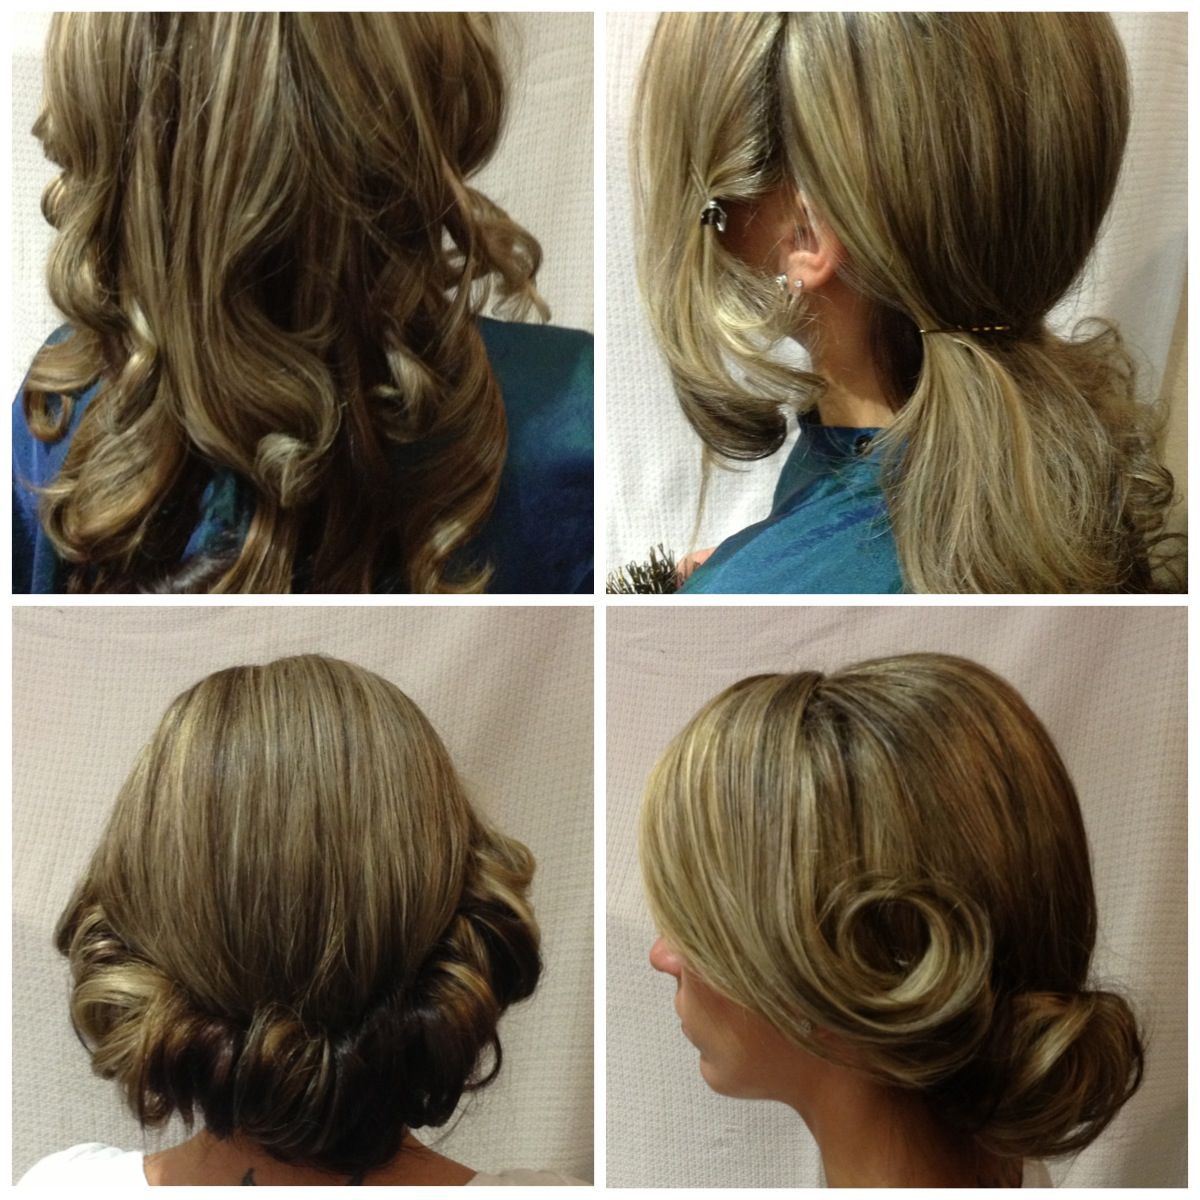 Step by step by christine frank do it yourself updos pinterest easy do it yourself hairstyles bing images solutioingenieria Choice Image